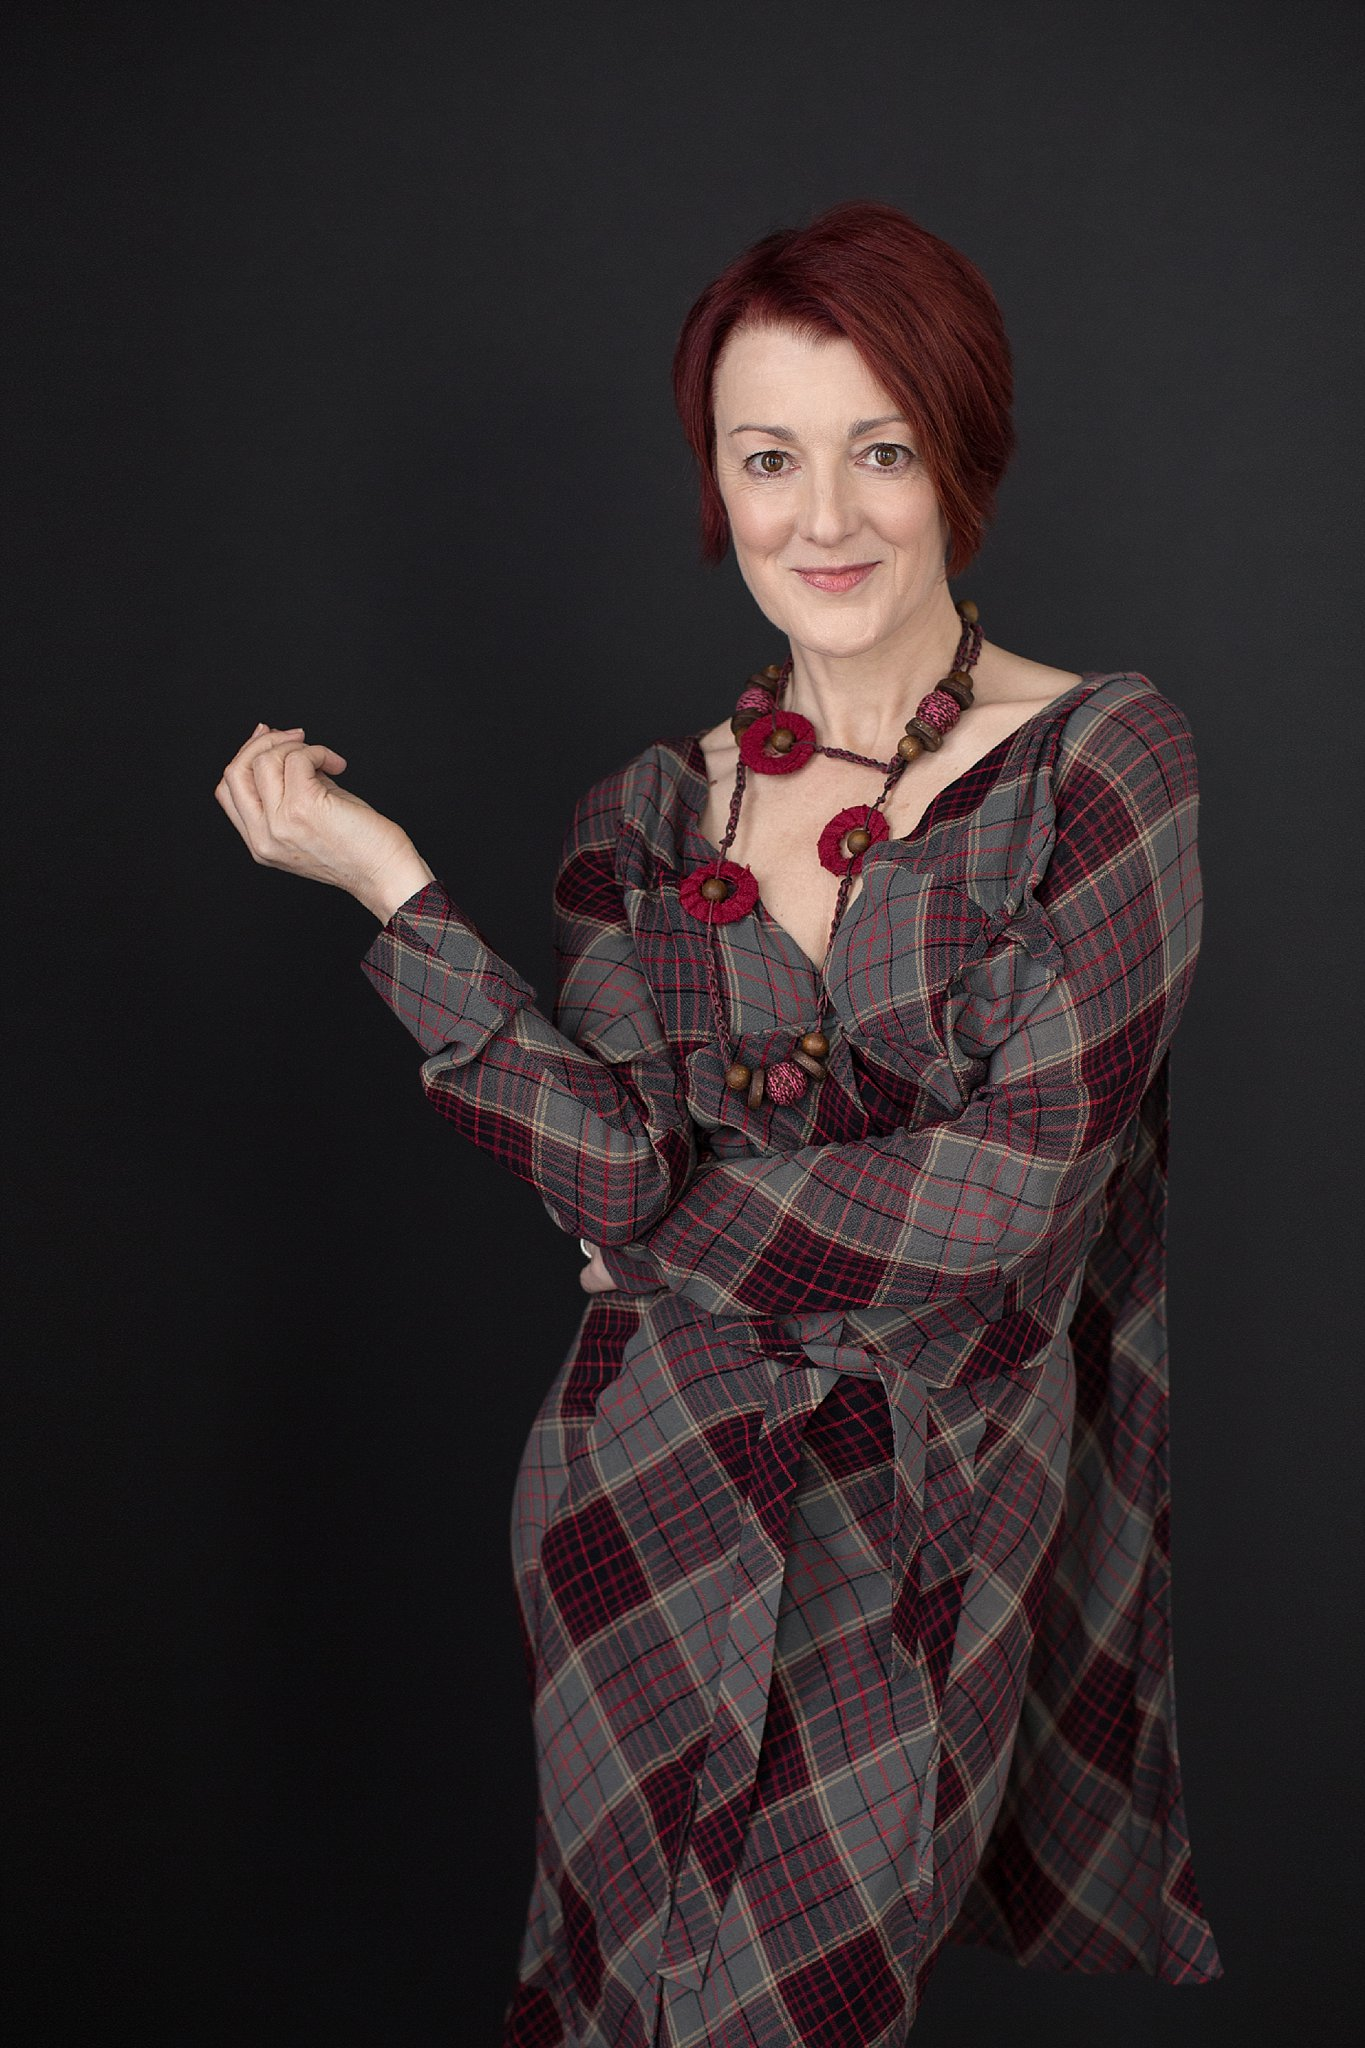 Jane in Plaid Vivienne Westwood Dress_0016.jpg